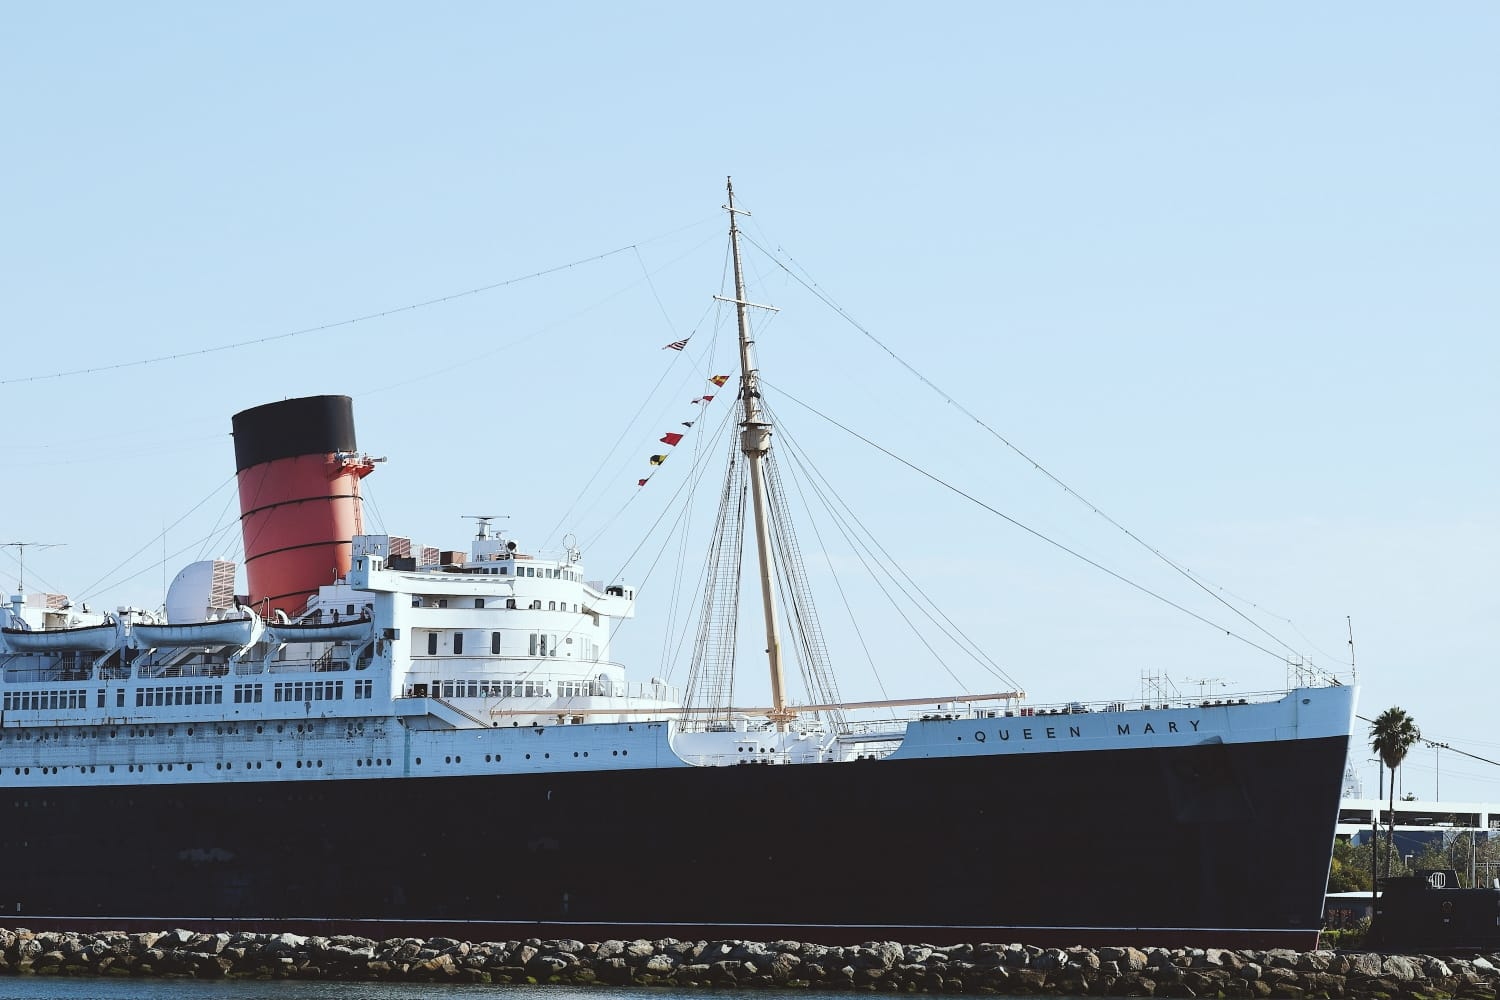 queen mary proposal